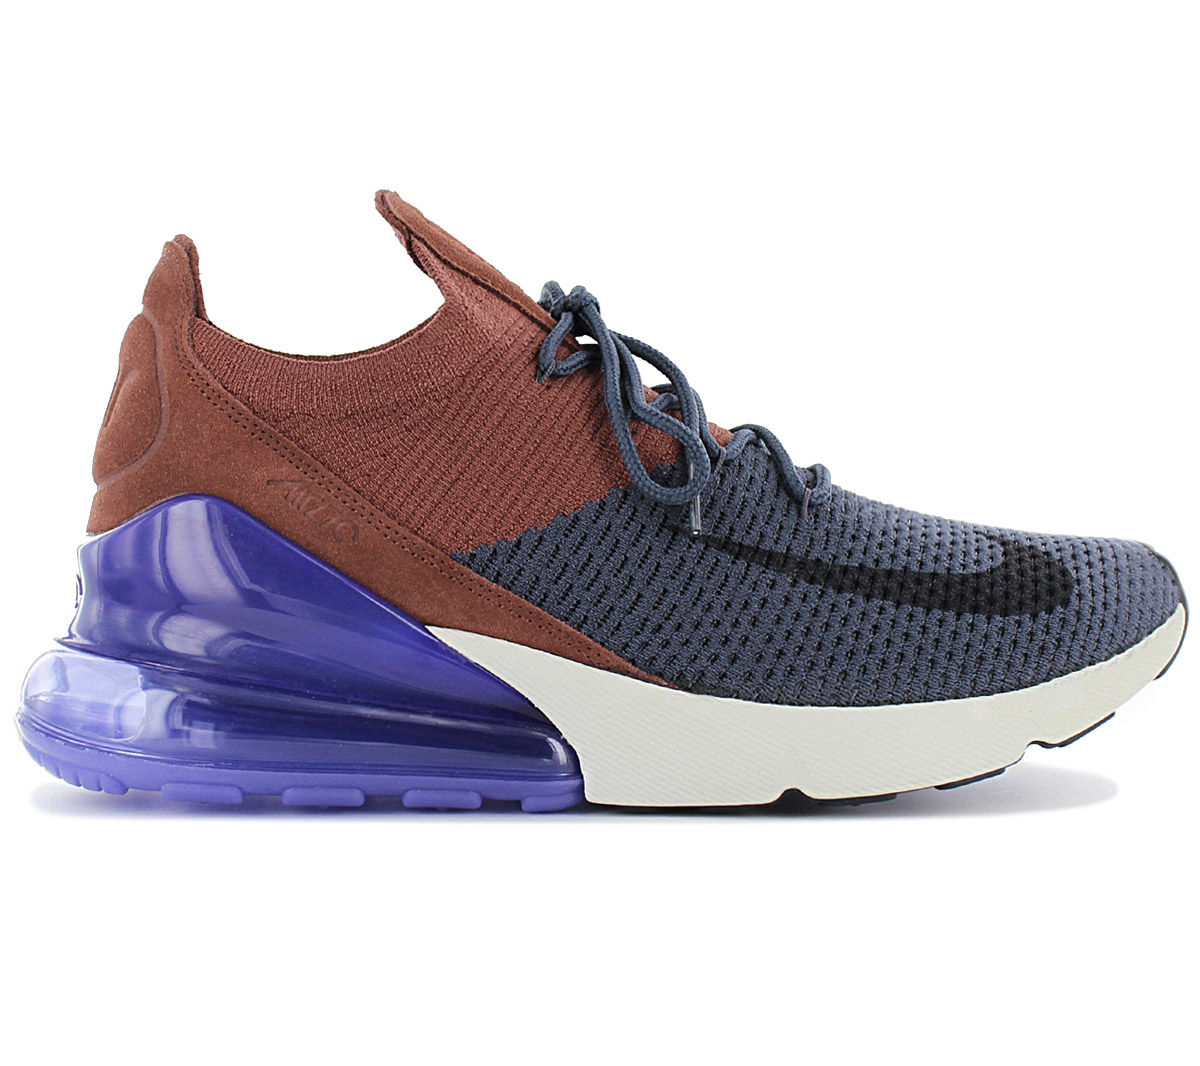 Nike Air Max 270 Flyknit Men's Casual Shoes EXPIRED